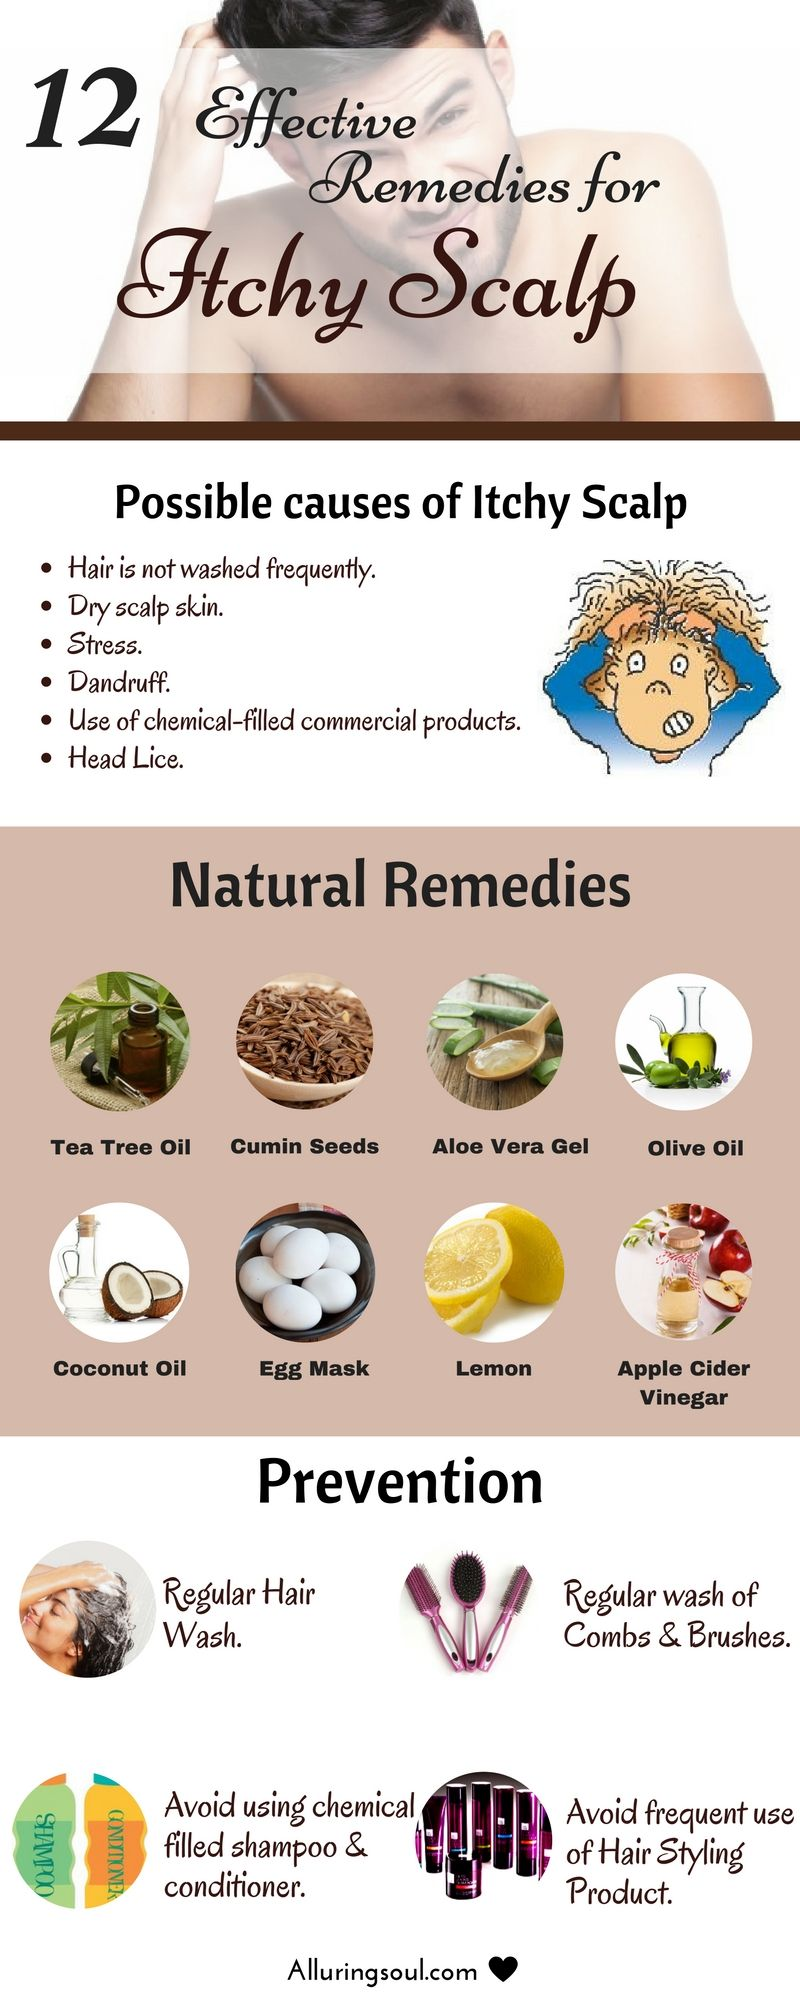 12 Effective Remedies For Itchy Scalp Alluring Soul Itchy Scalp Thick Hair Remedies Itchy Scalp Remedy